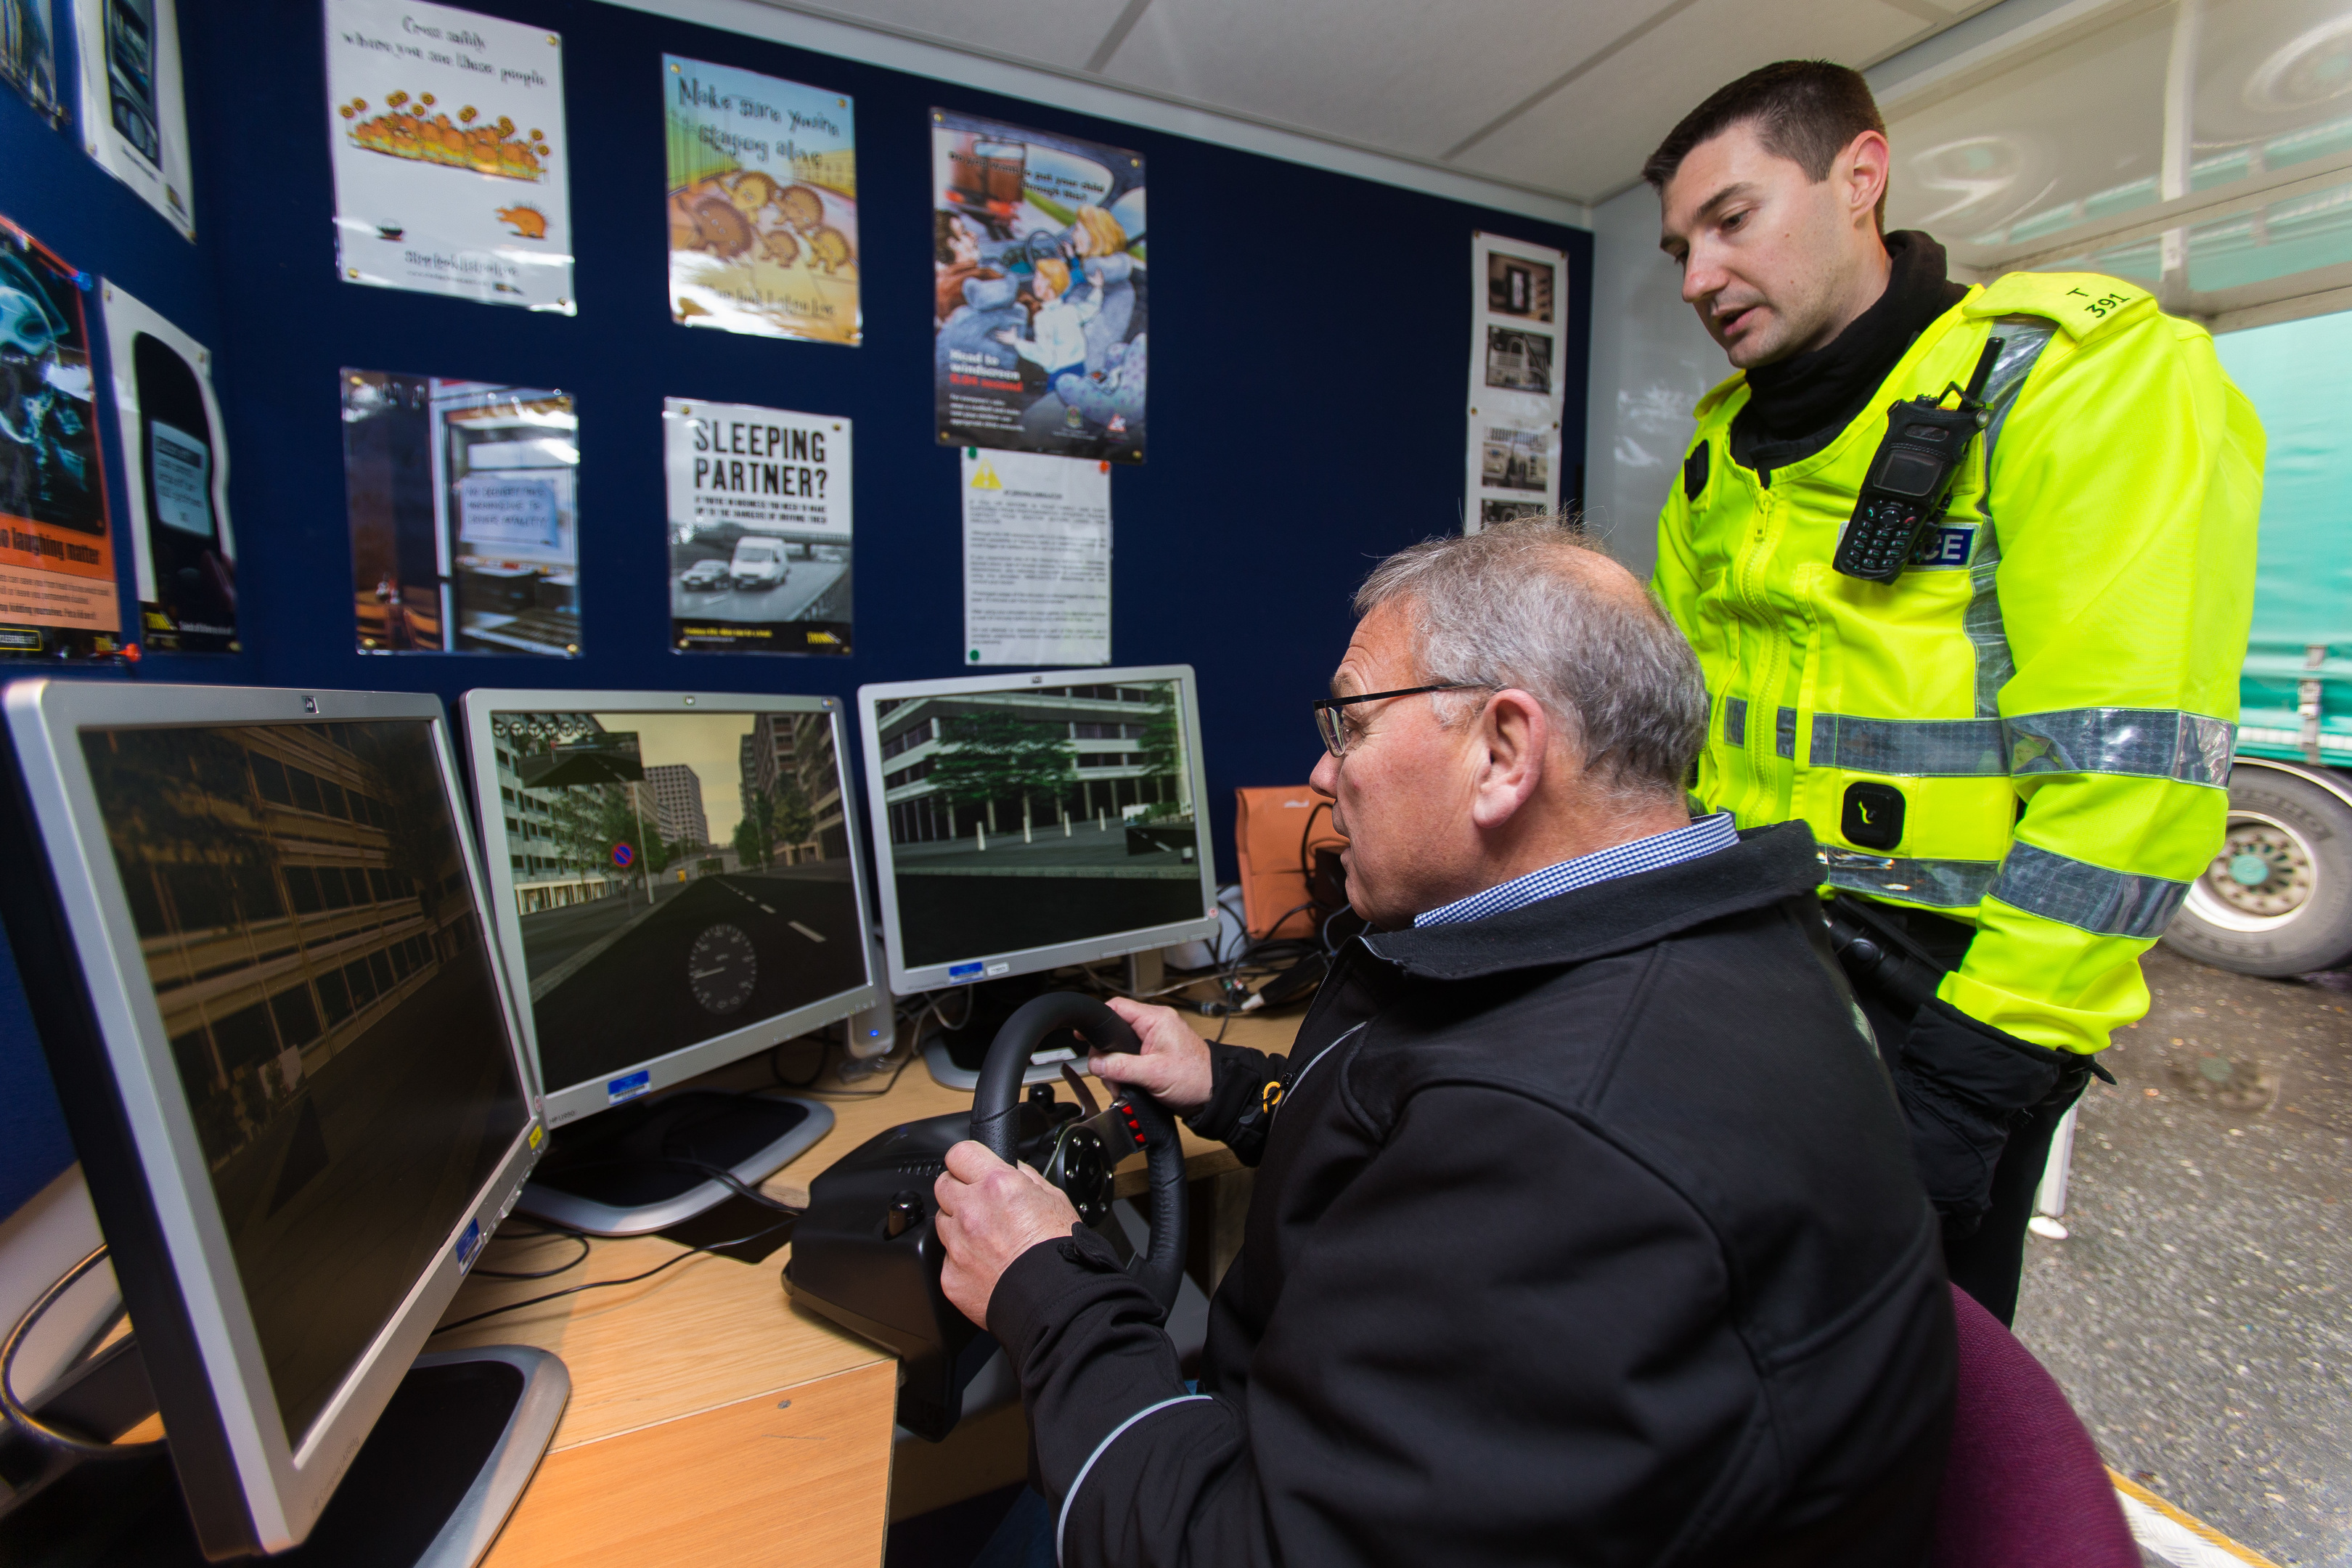 Ian Morrison, 73, is tested by the simulator as PC Craig Amos looks on.